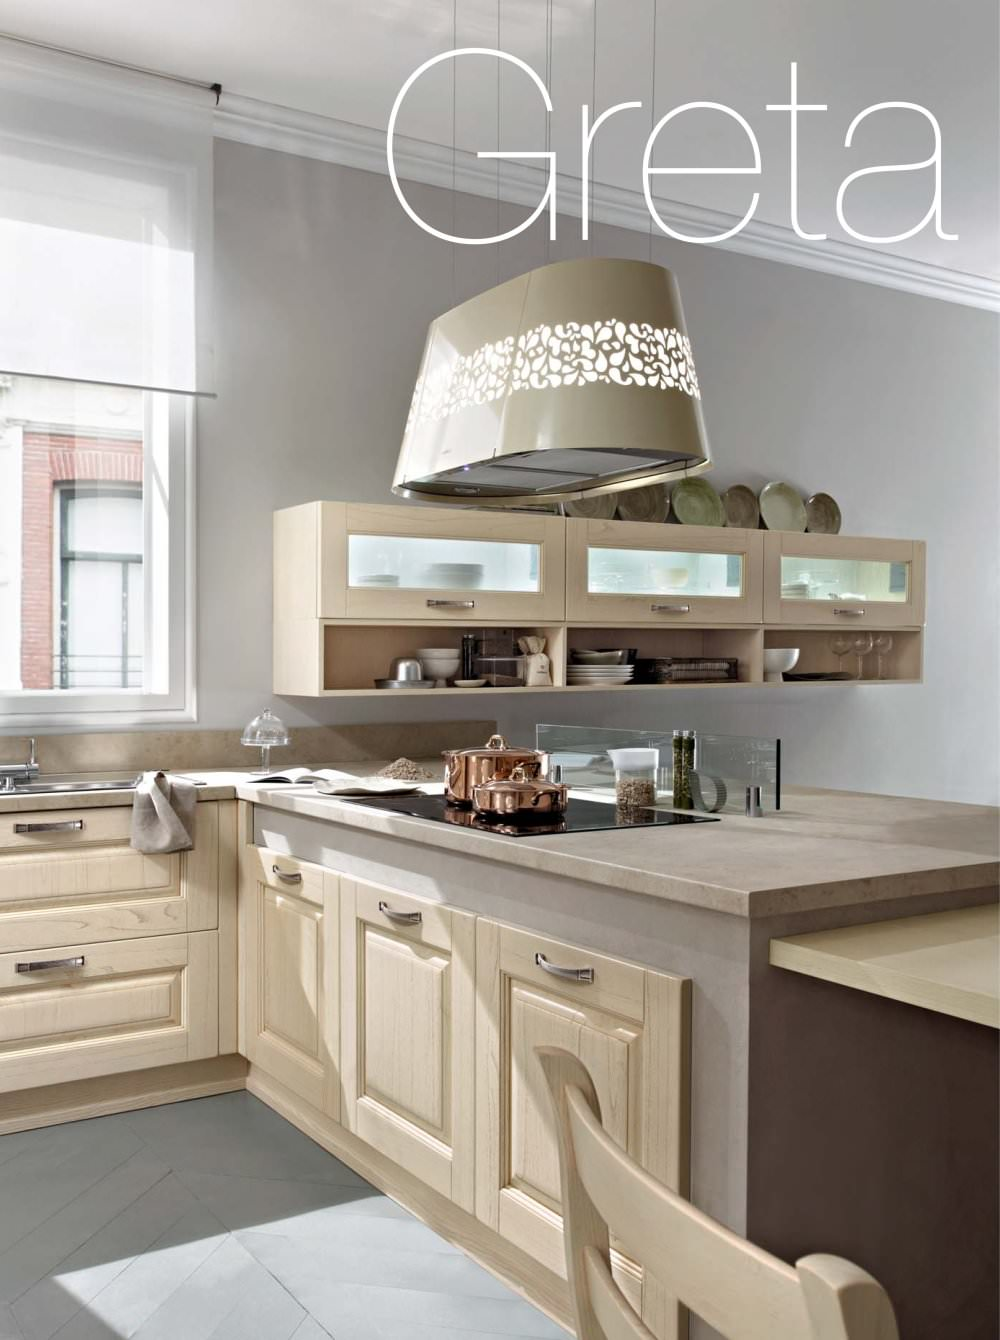 Cucina Greta Greta Ar Tre Pdf Catalogs Documentation Brochures